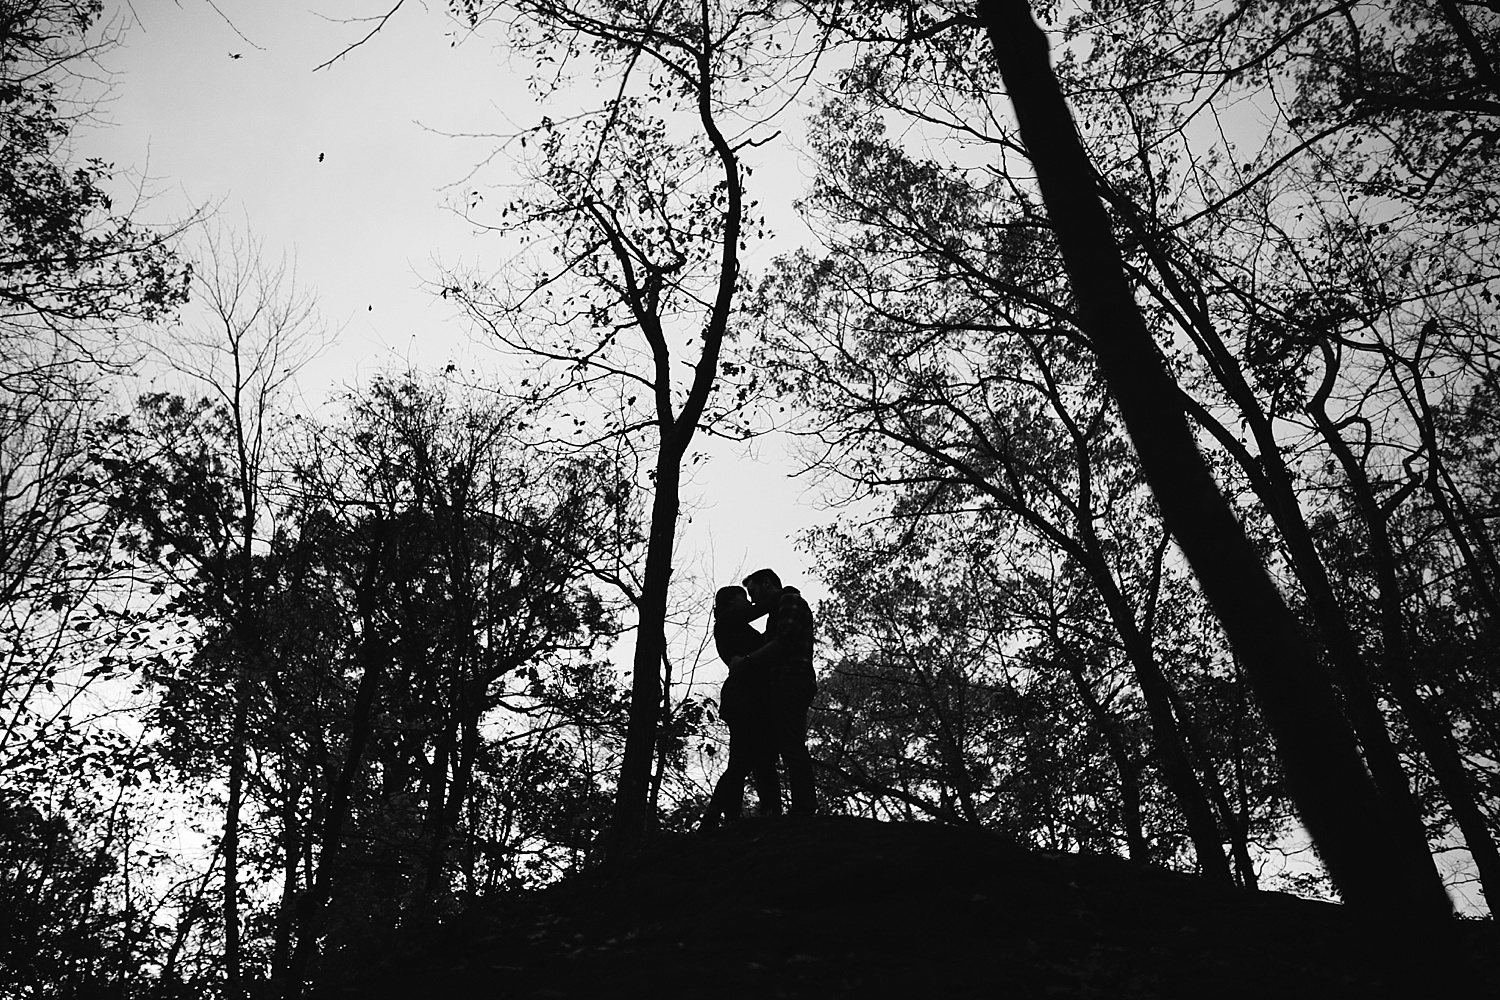 michelleanddaniel_eaglerockreservation_engagement_image027.jpg